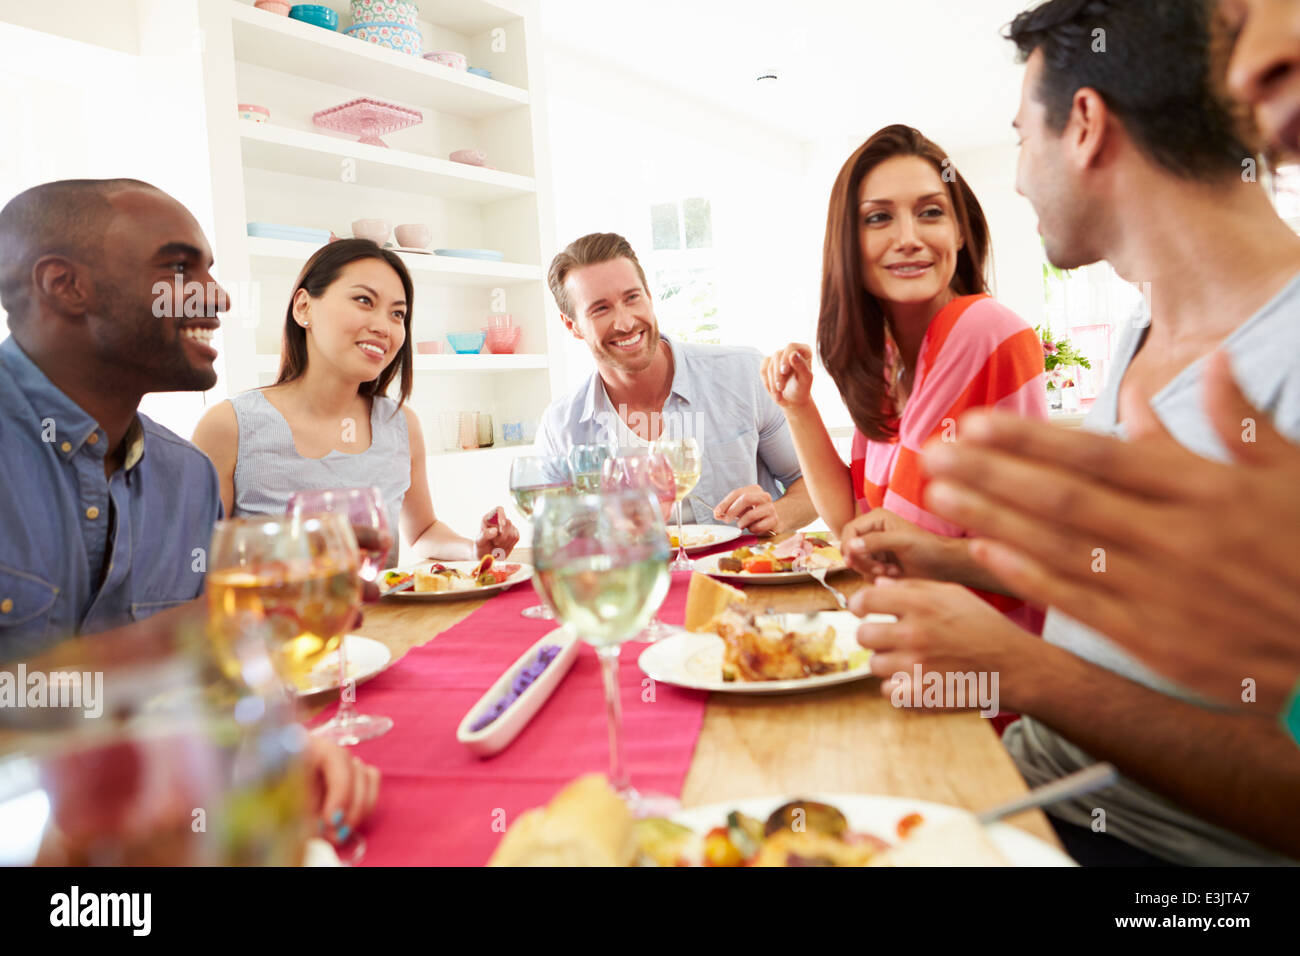 Group Of Friends Sitting Around Table Having Dinner Party - Stock Image